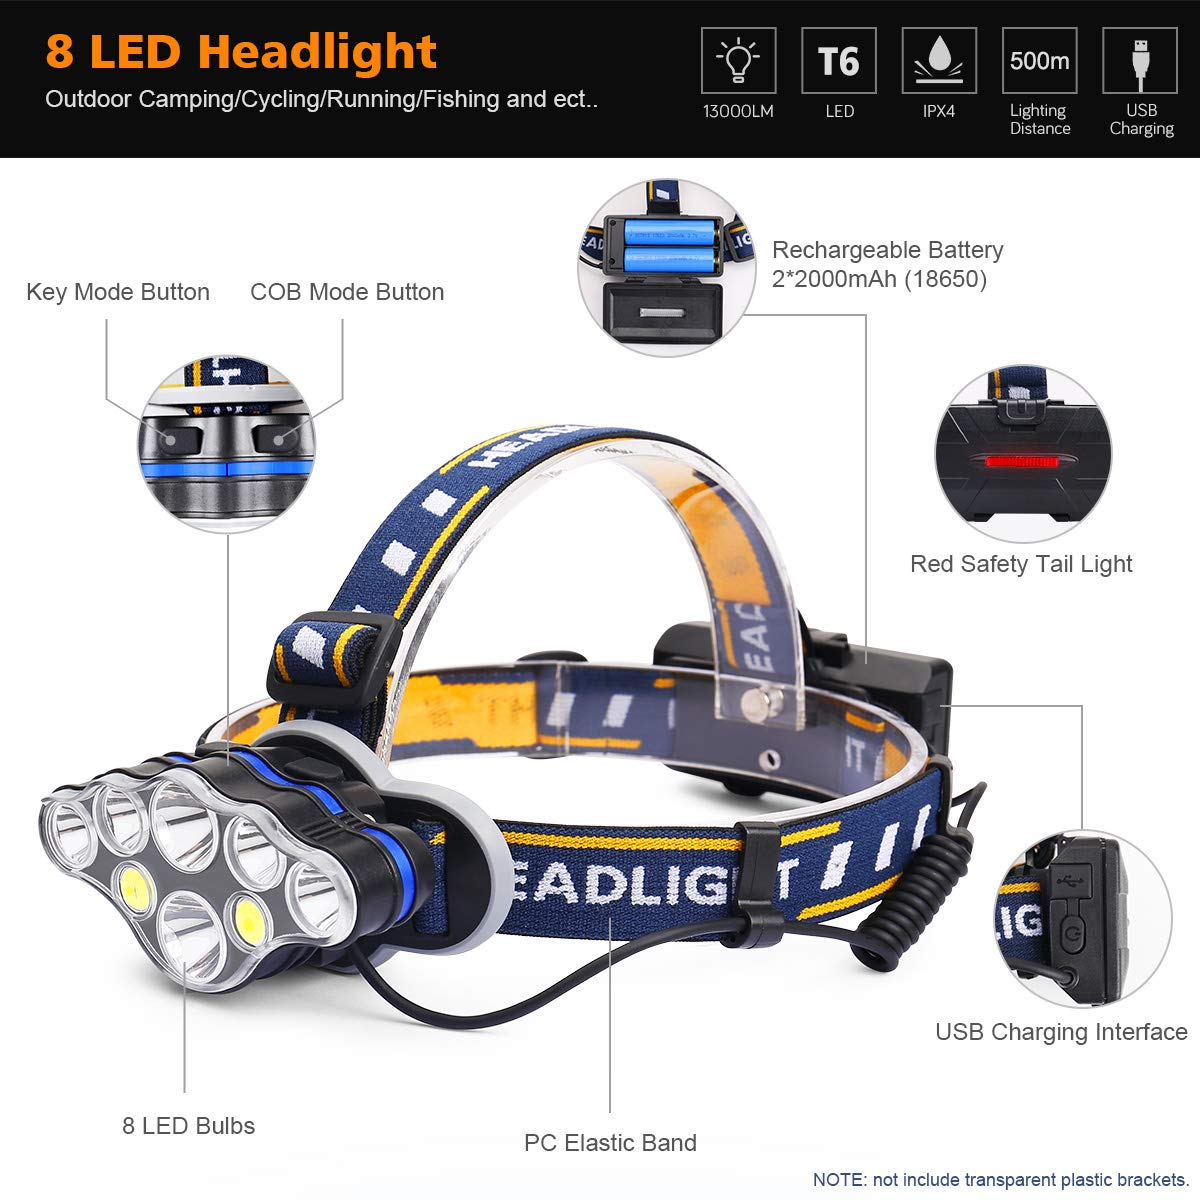 MOSFiATA Rechargeable Headlamp Flashlight, Xtreme Bright head lamp 13000 Lumen Headlights IPX4 Waterproof Headlamps for Adults Camping Fishing Hunting Running Jogging Hiking Cycling with Red Light